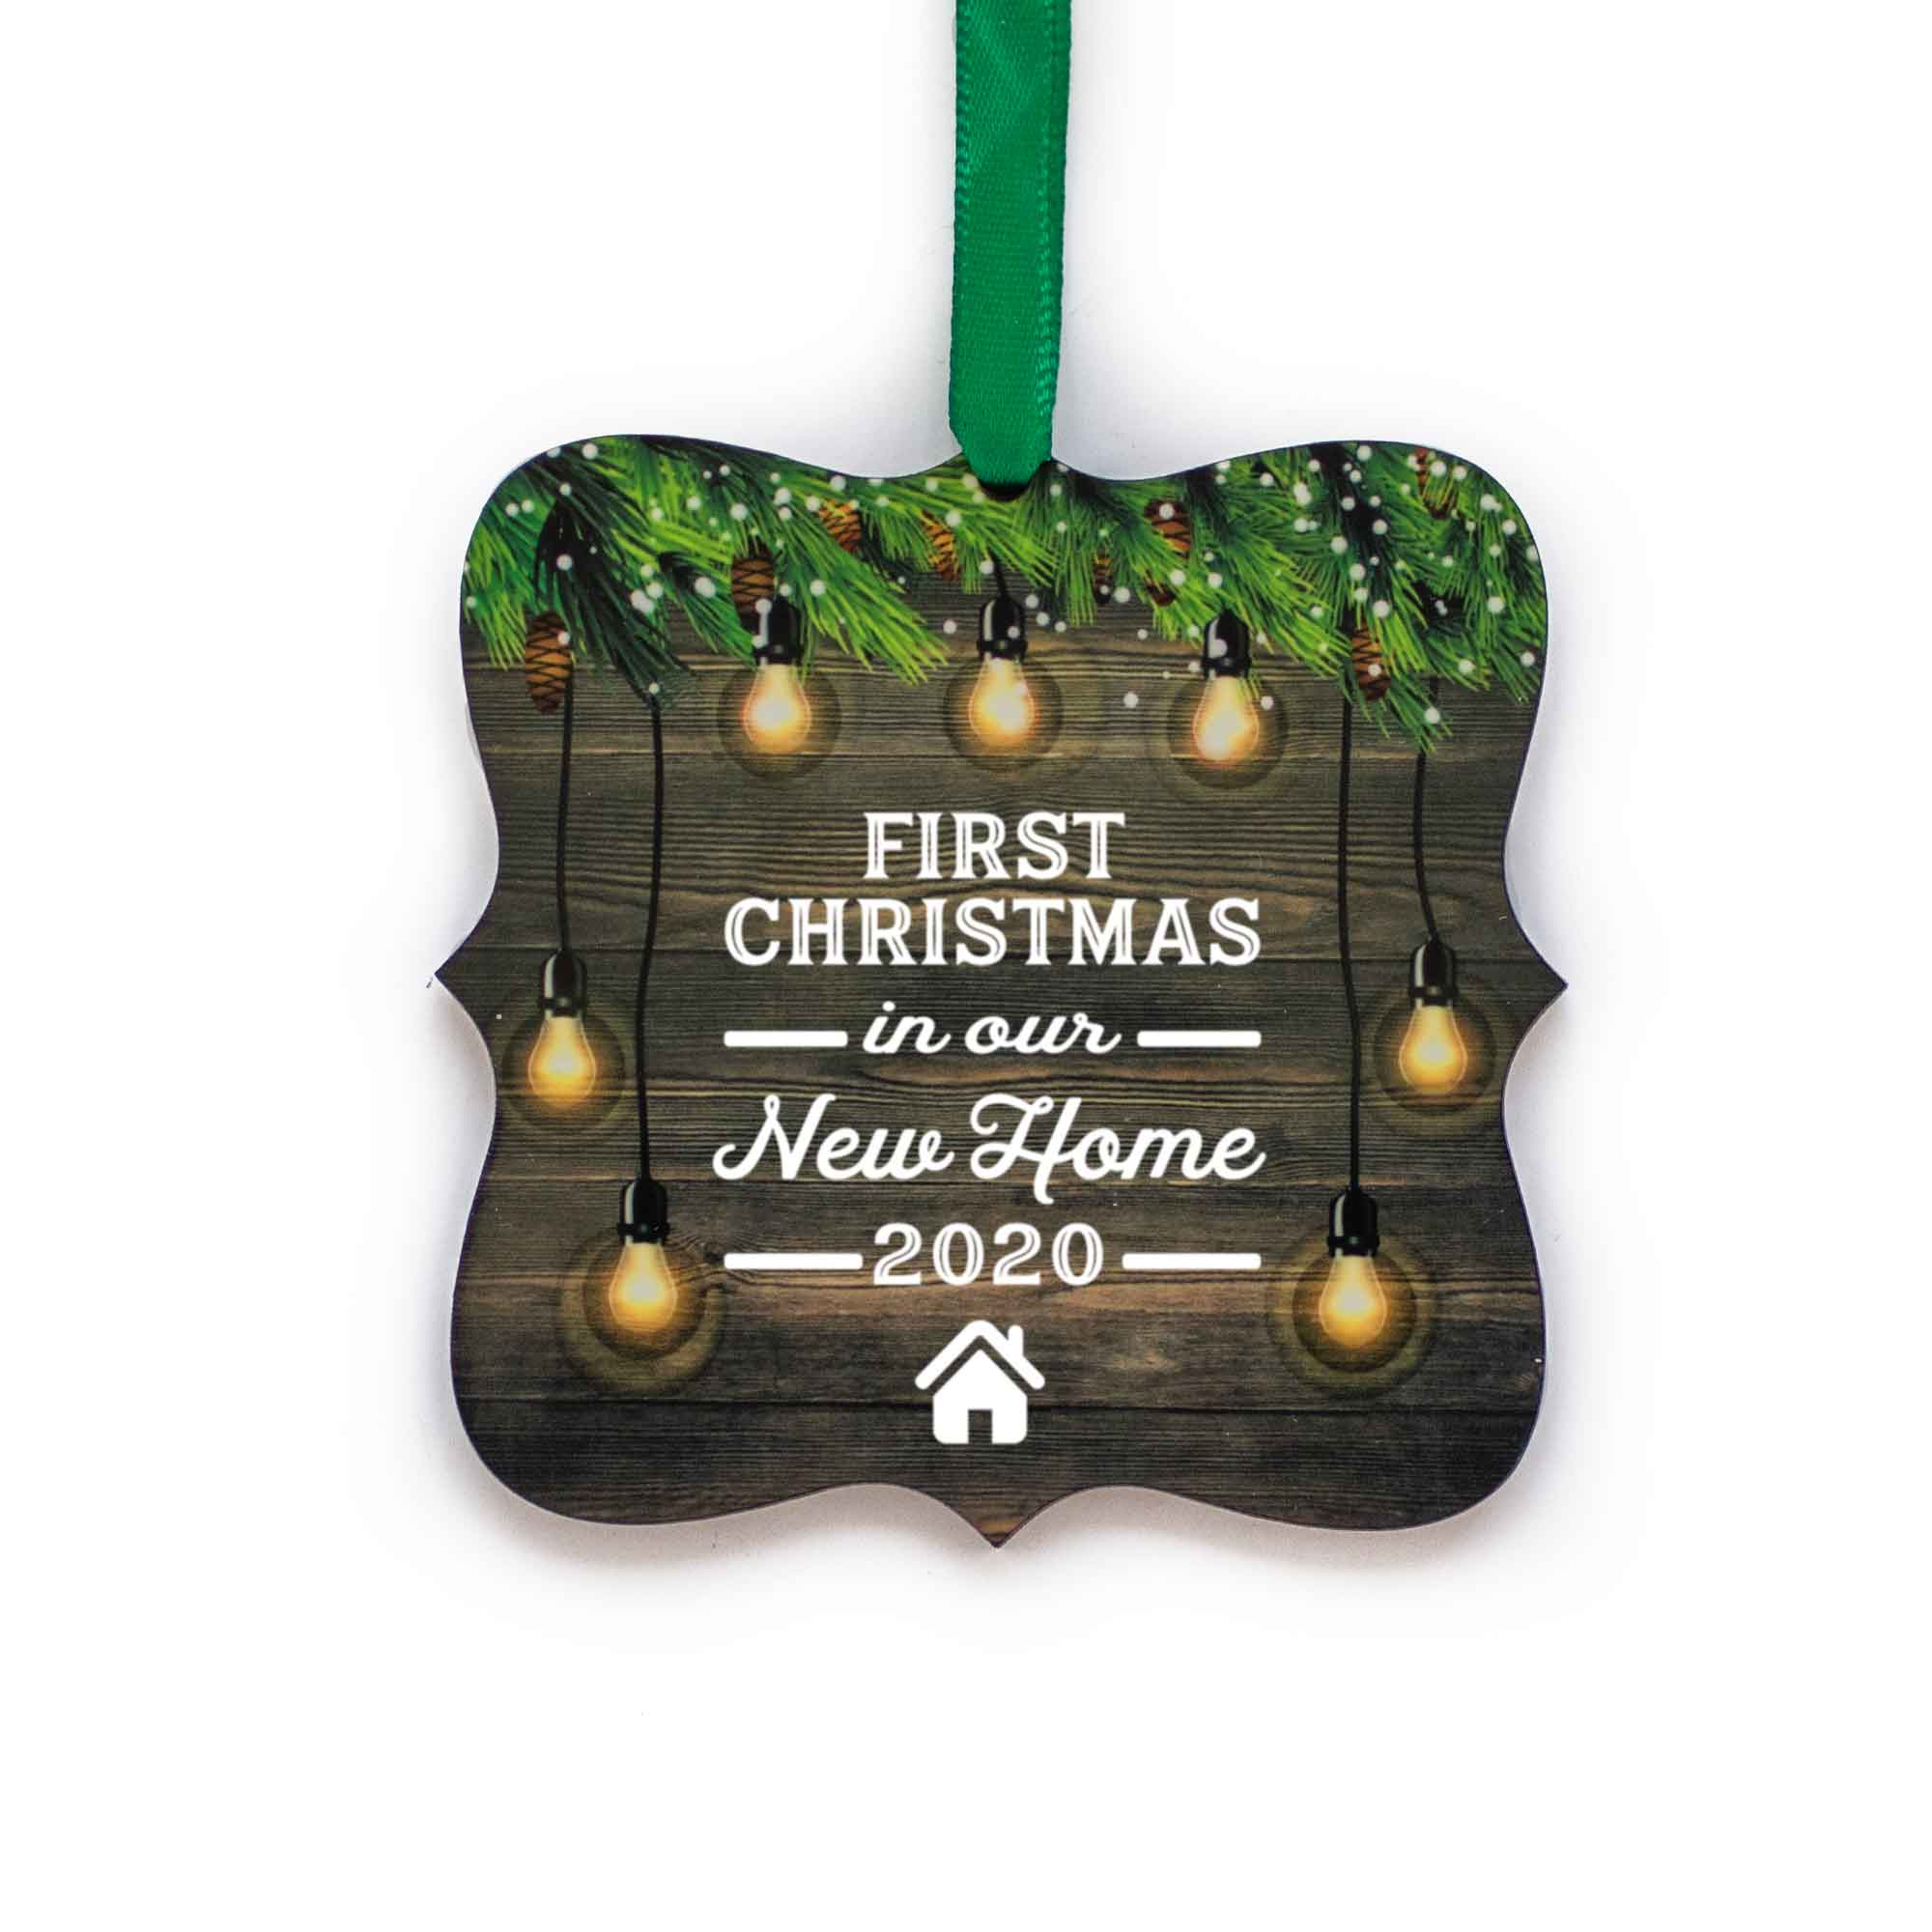 CopyrightPaisleyGroveGIFTS S510m First Christmas in Our New Home 2020 Ornament with ribbon in rustic traditional design